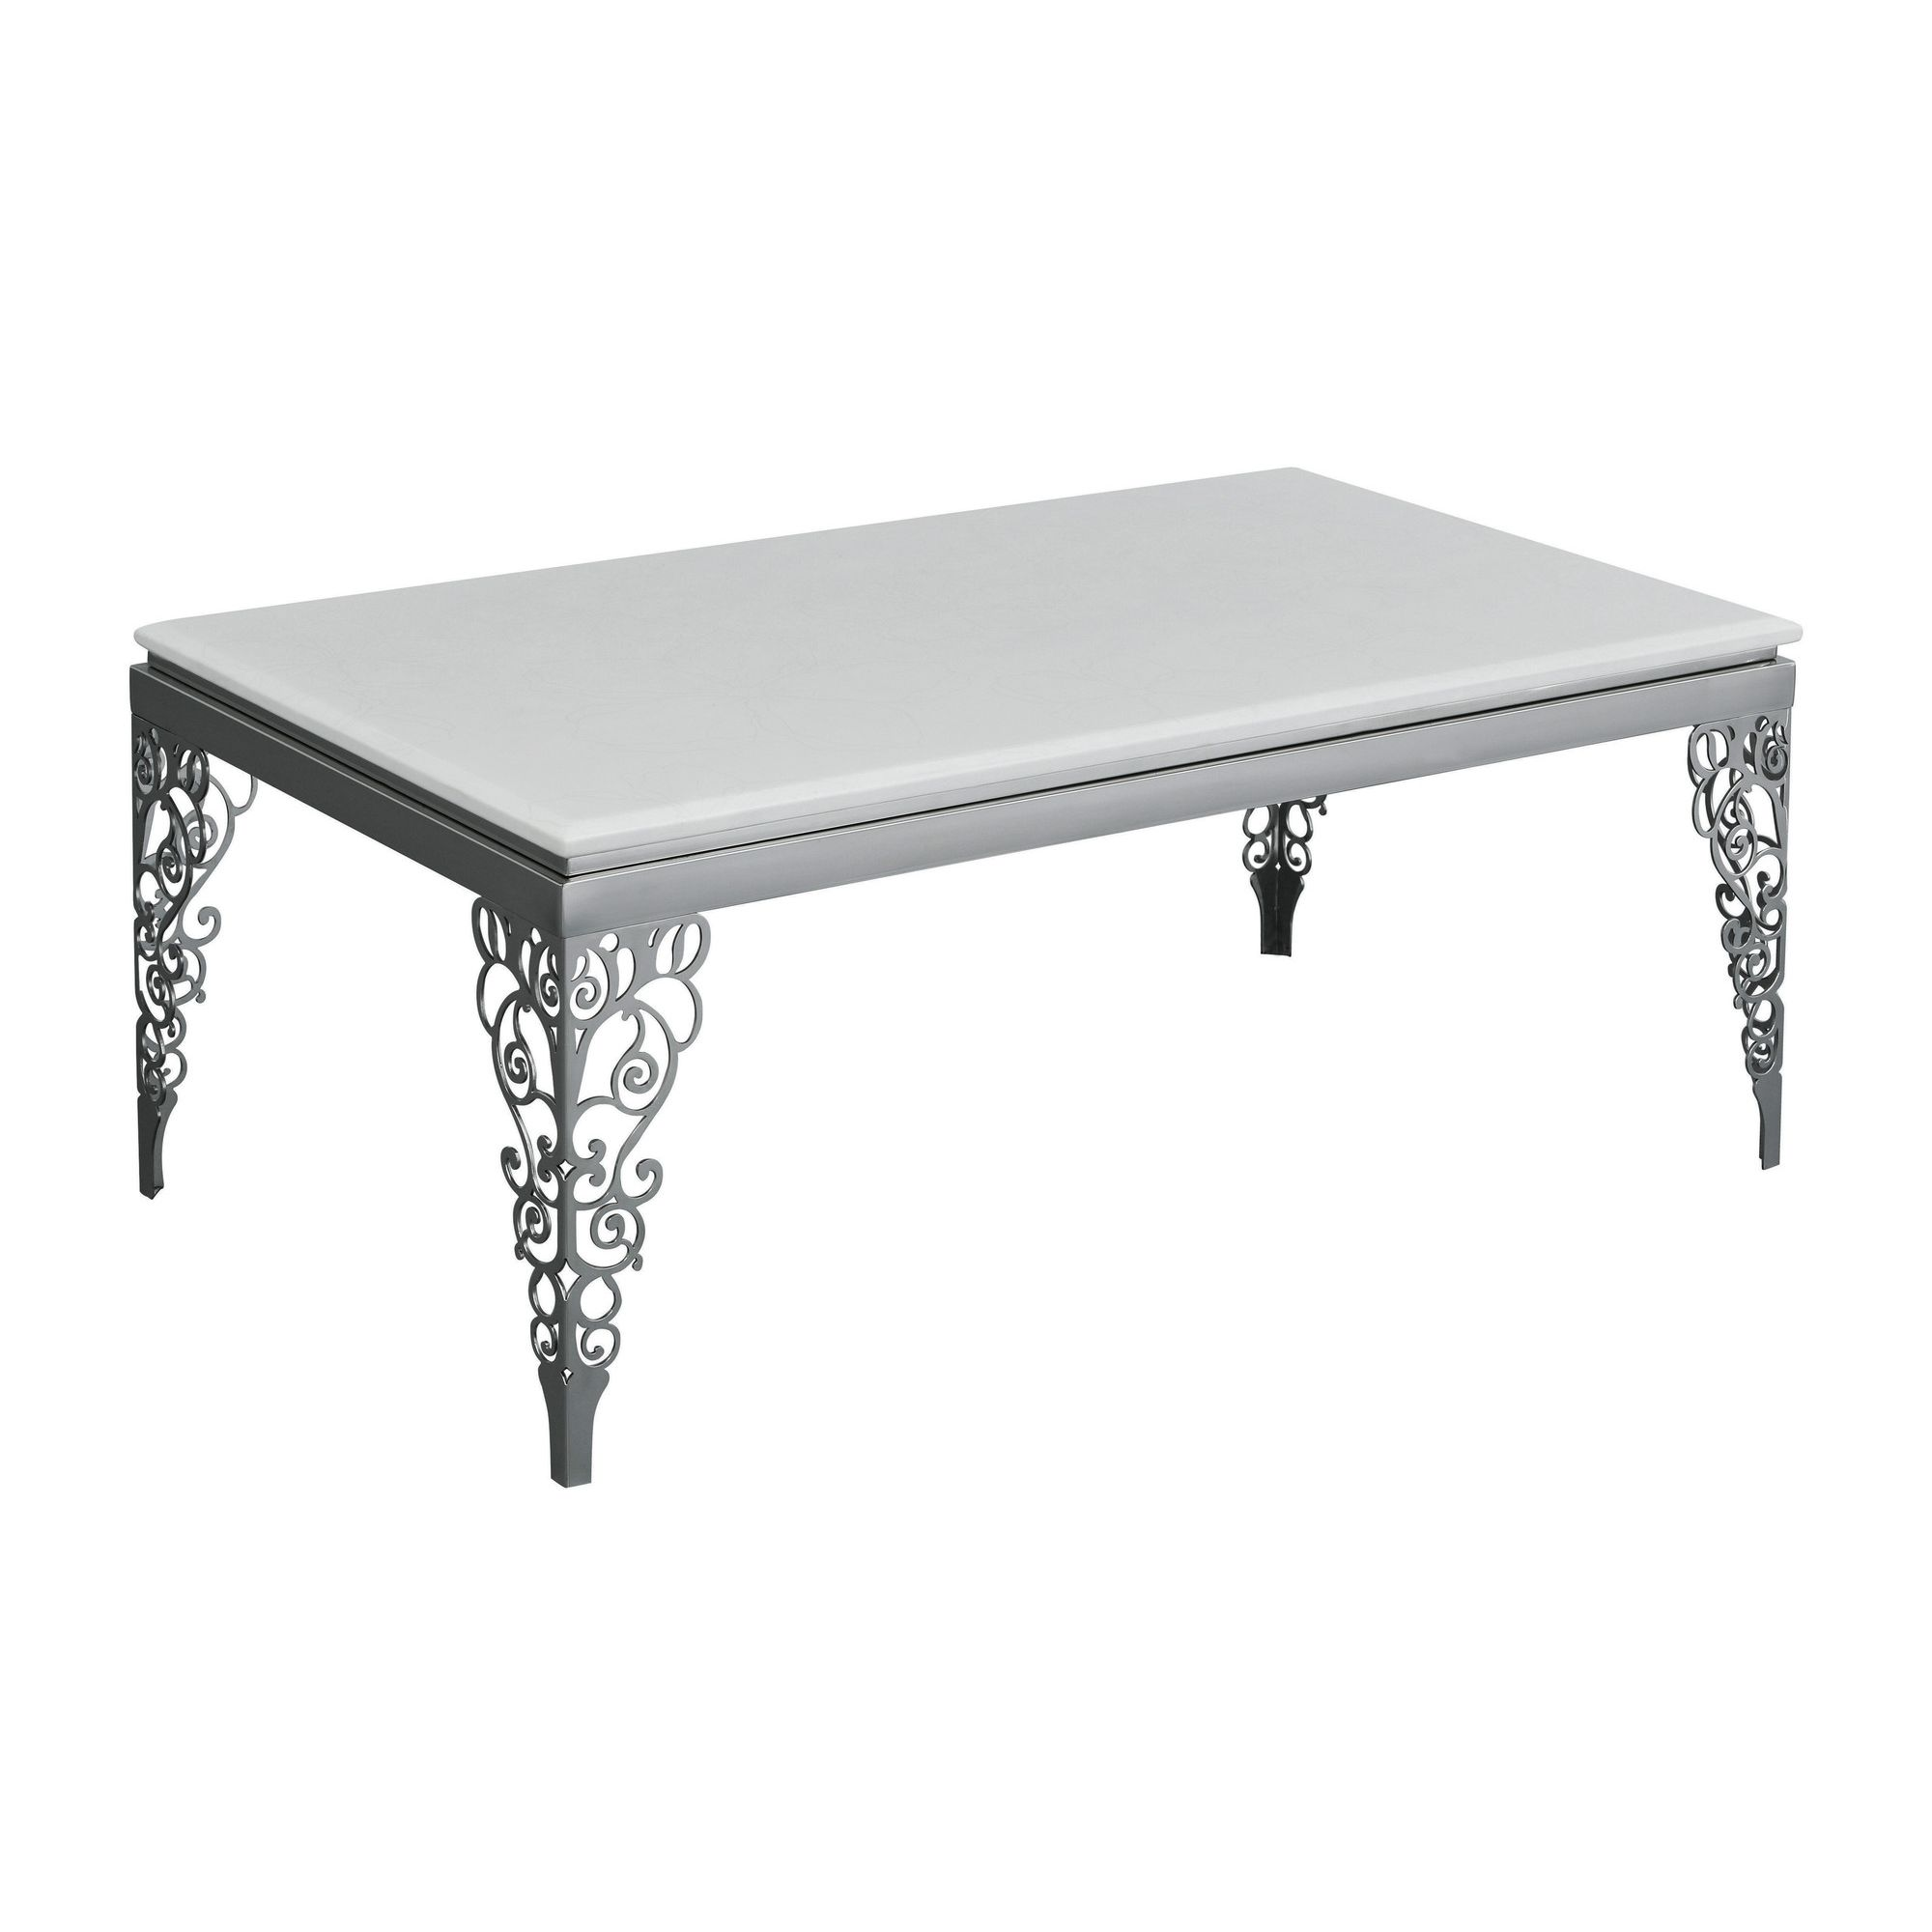 Premier Housewares Coffee Table with Stainless Steel Legs at Tesco Direct